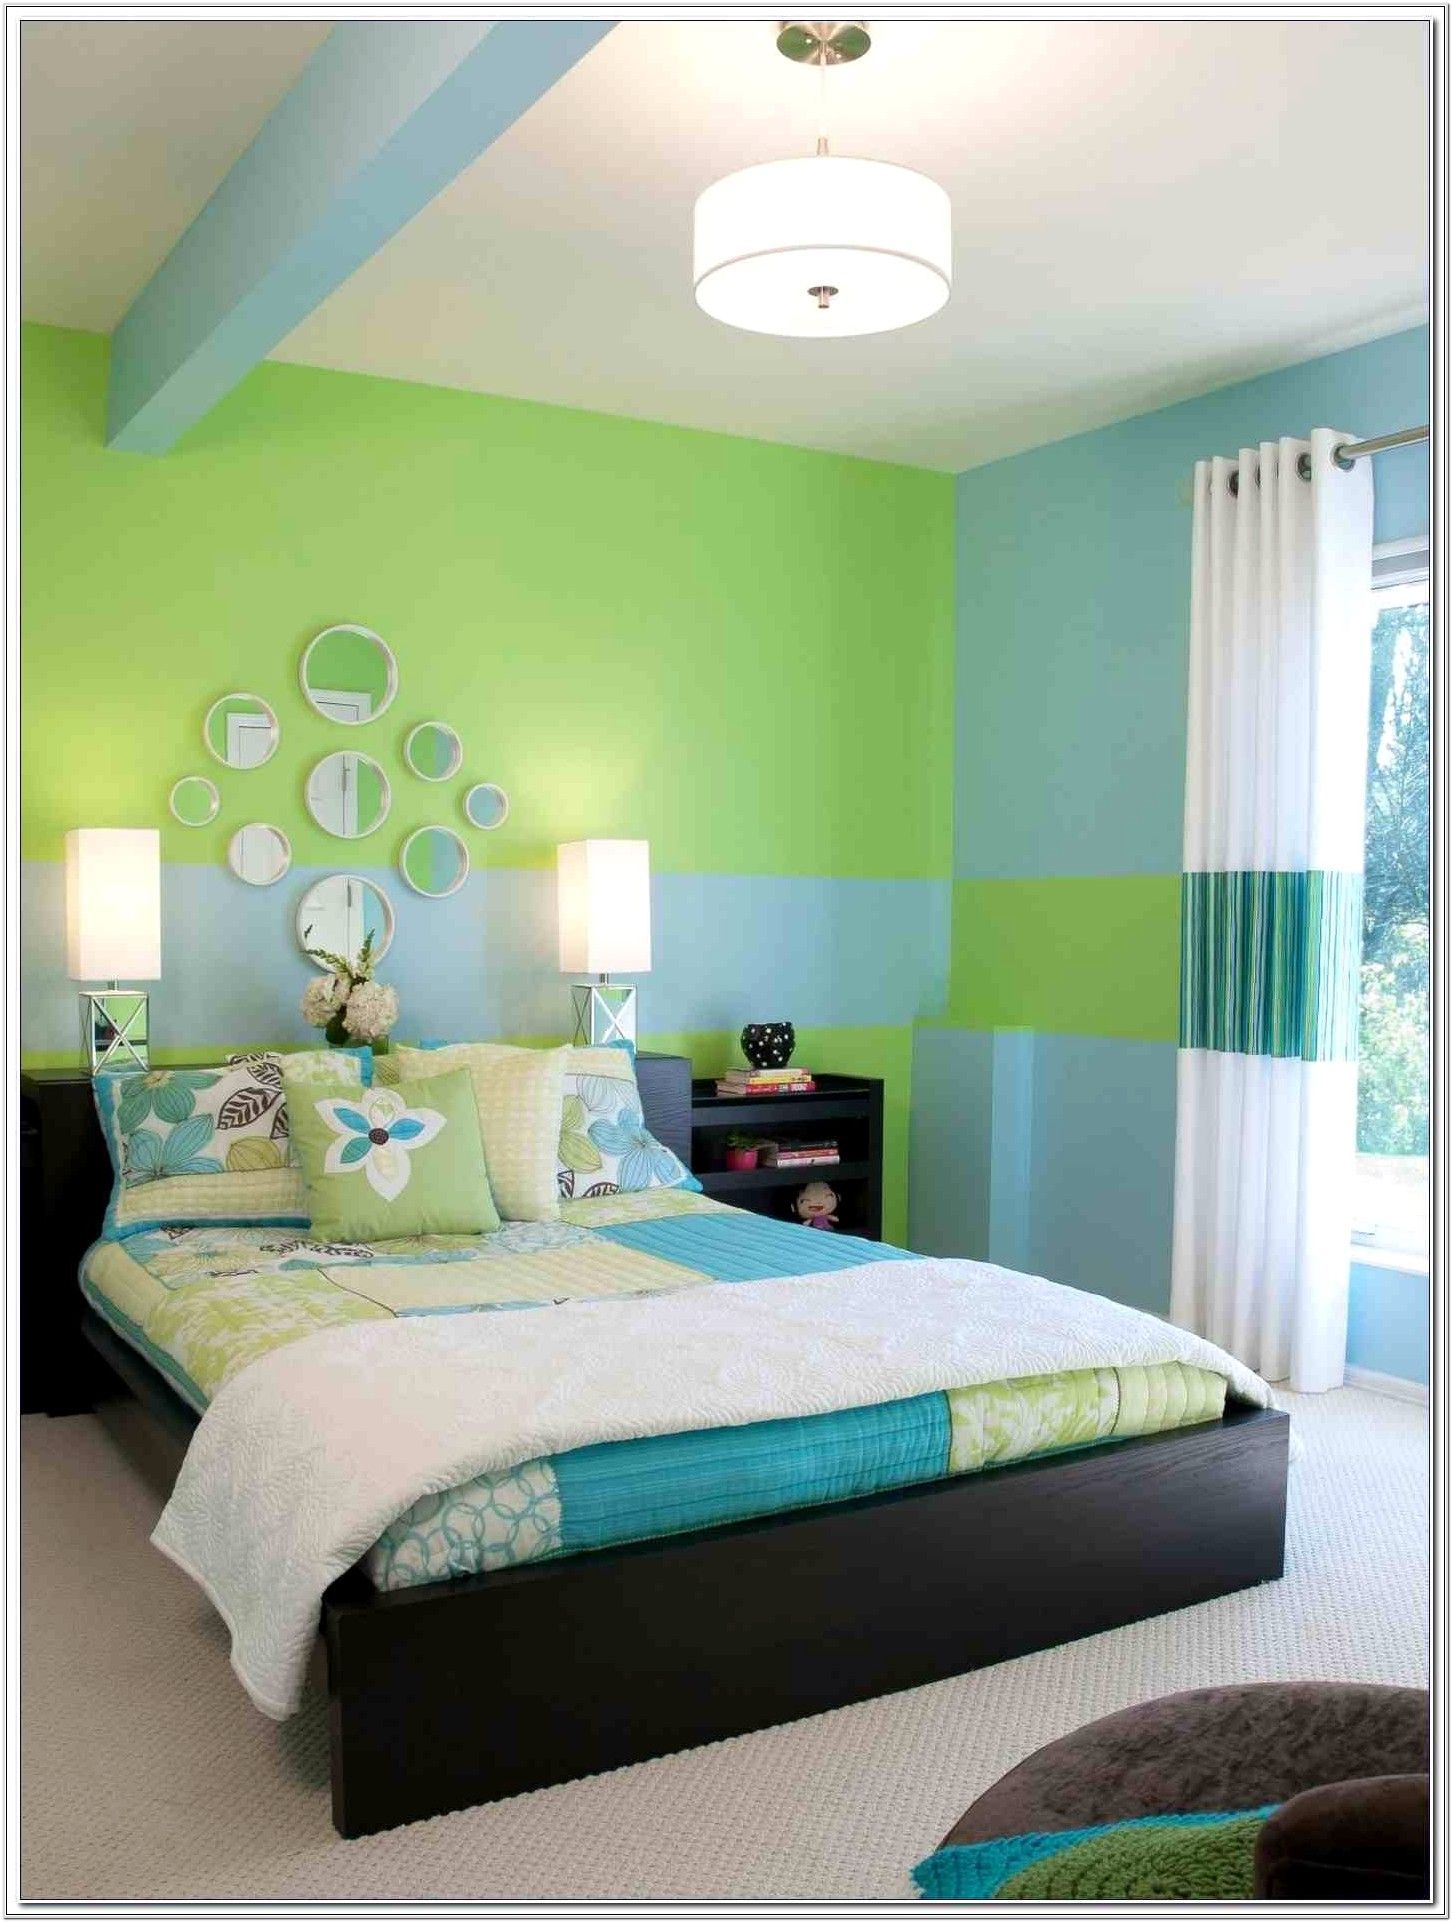 Green And Blue Bedroom Decorating Ideas In 2020 Green Bedroom Decor Unique Bedroom Design Simple Room Decoration